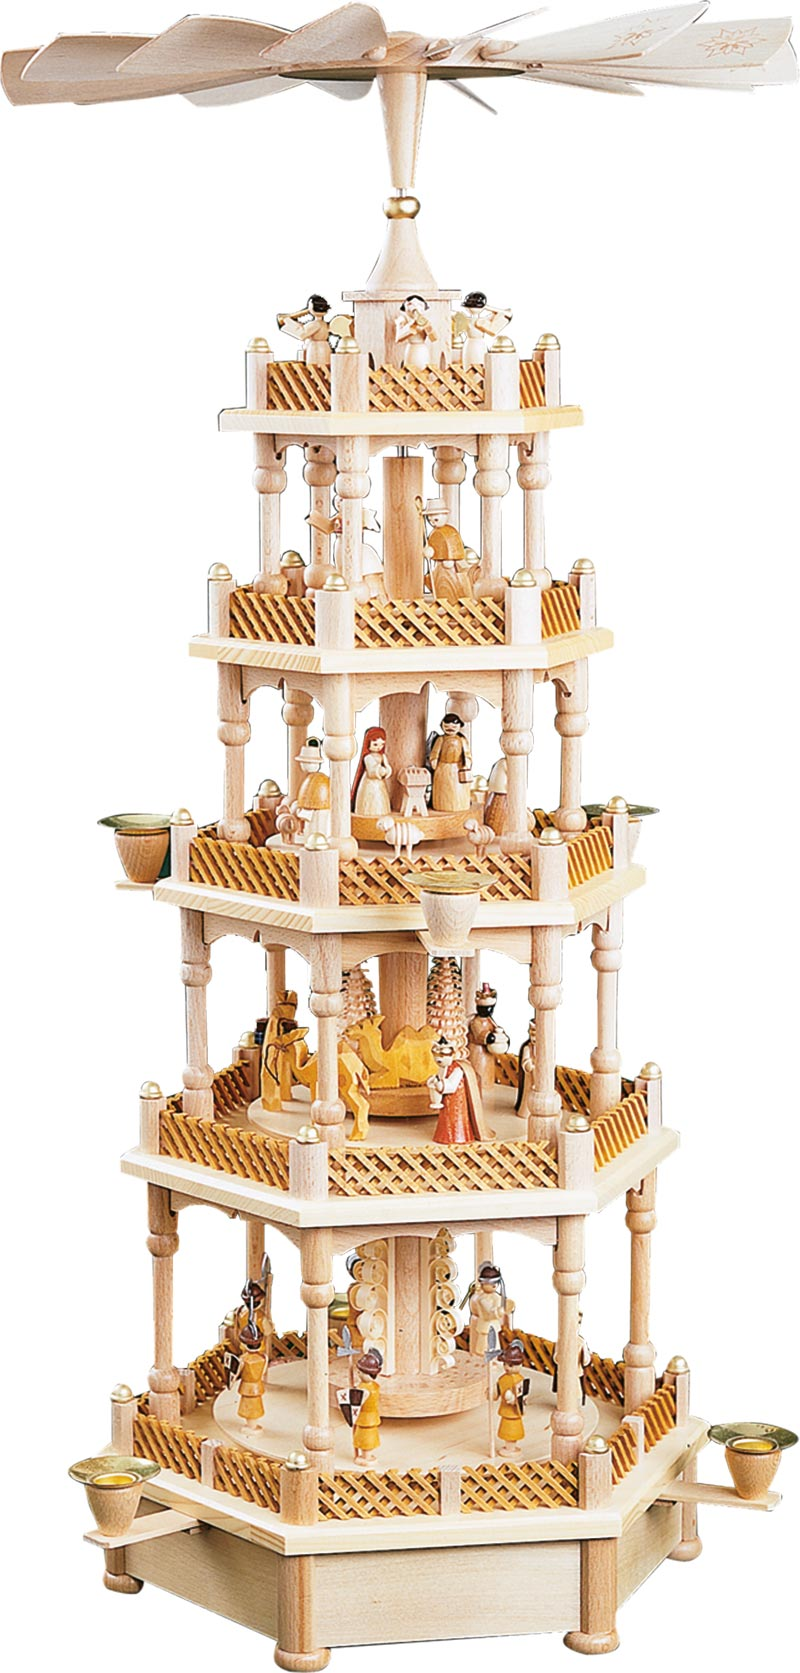 Christmas Pyramid.4 Tier Musical Silent Night Nativity Natural German Wood